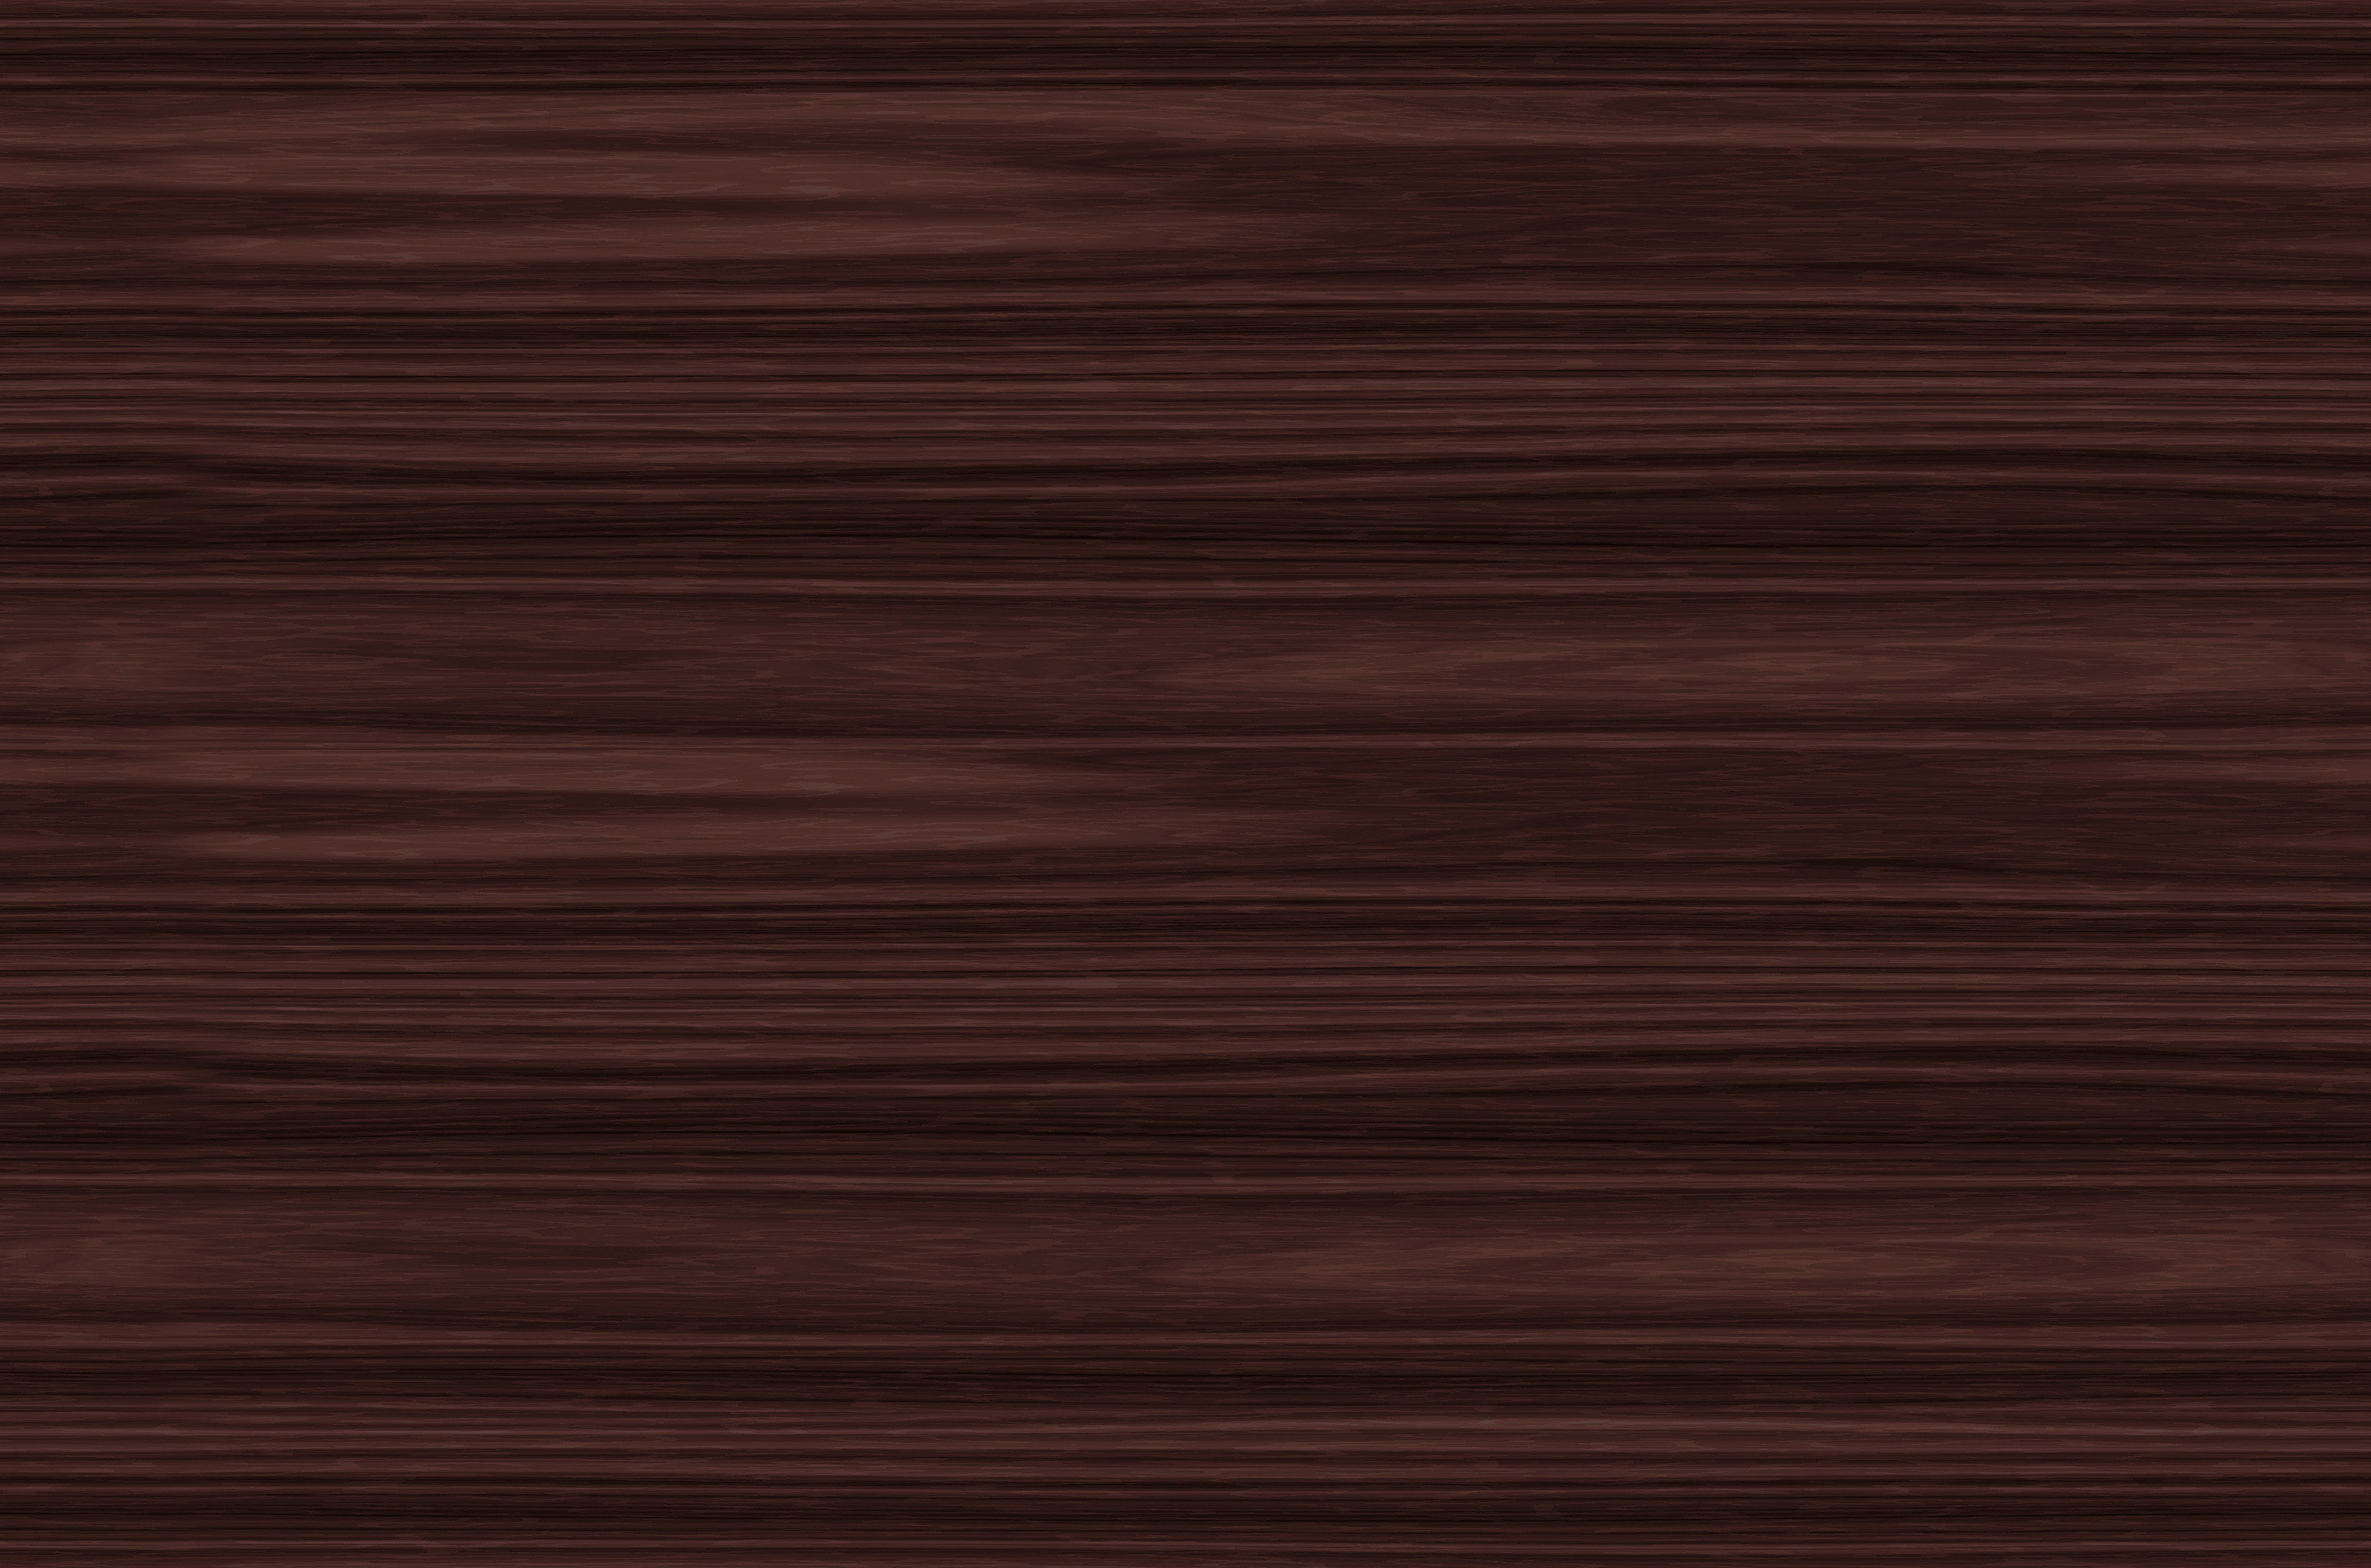 Dark Brown Fine Wood Texture Century Lighting Electric